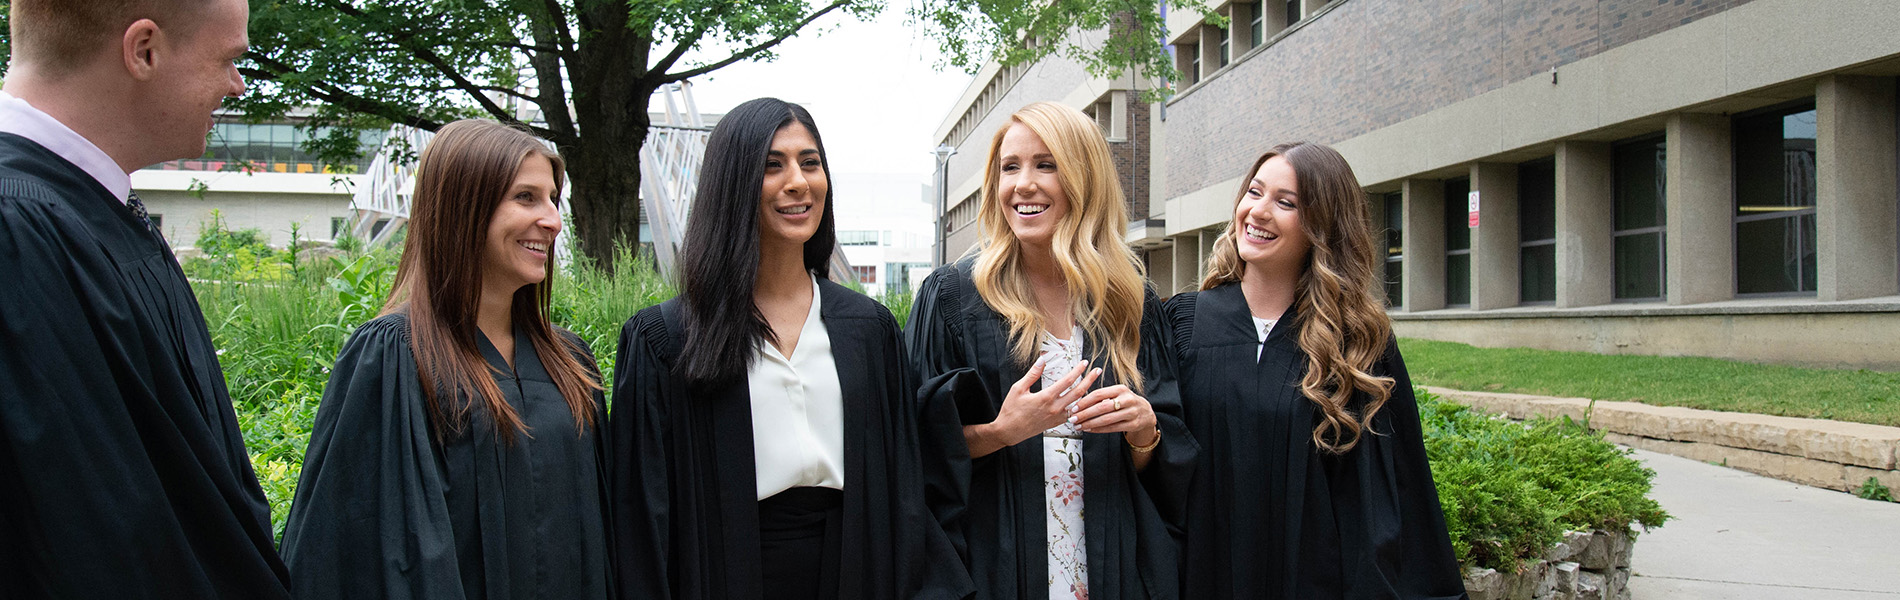 5 Mohawk students after convocation in grad robes.jpg